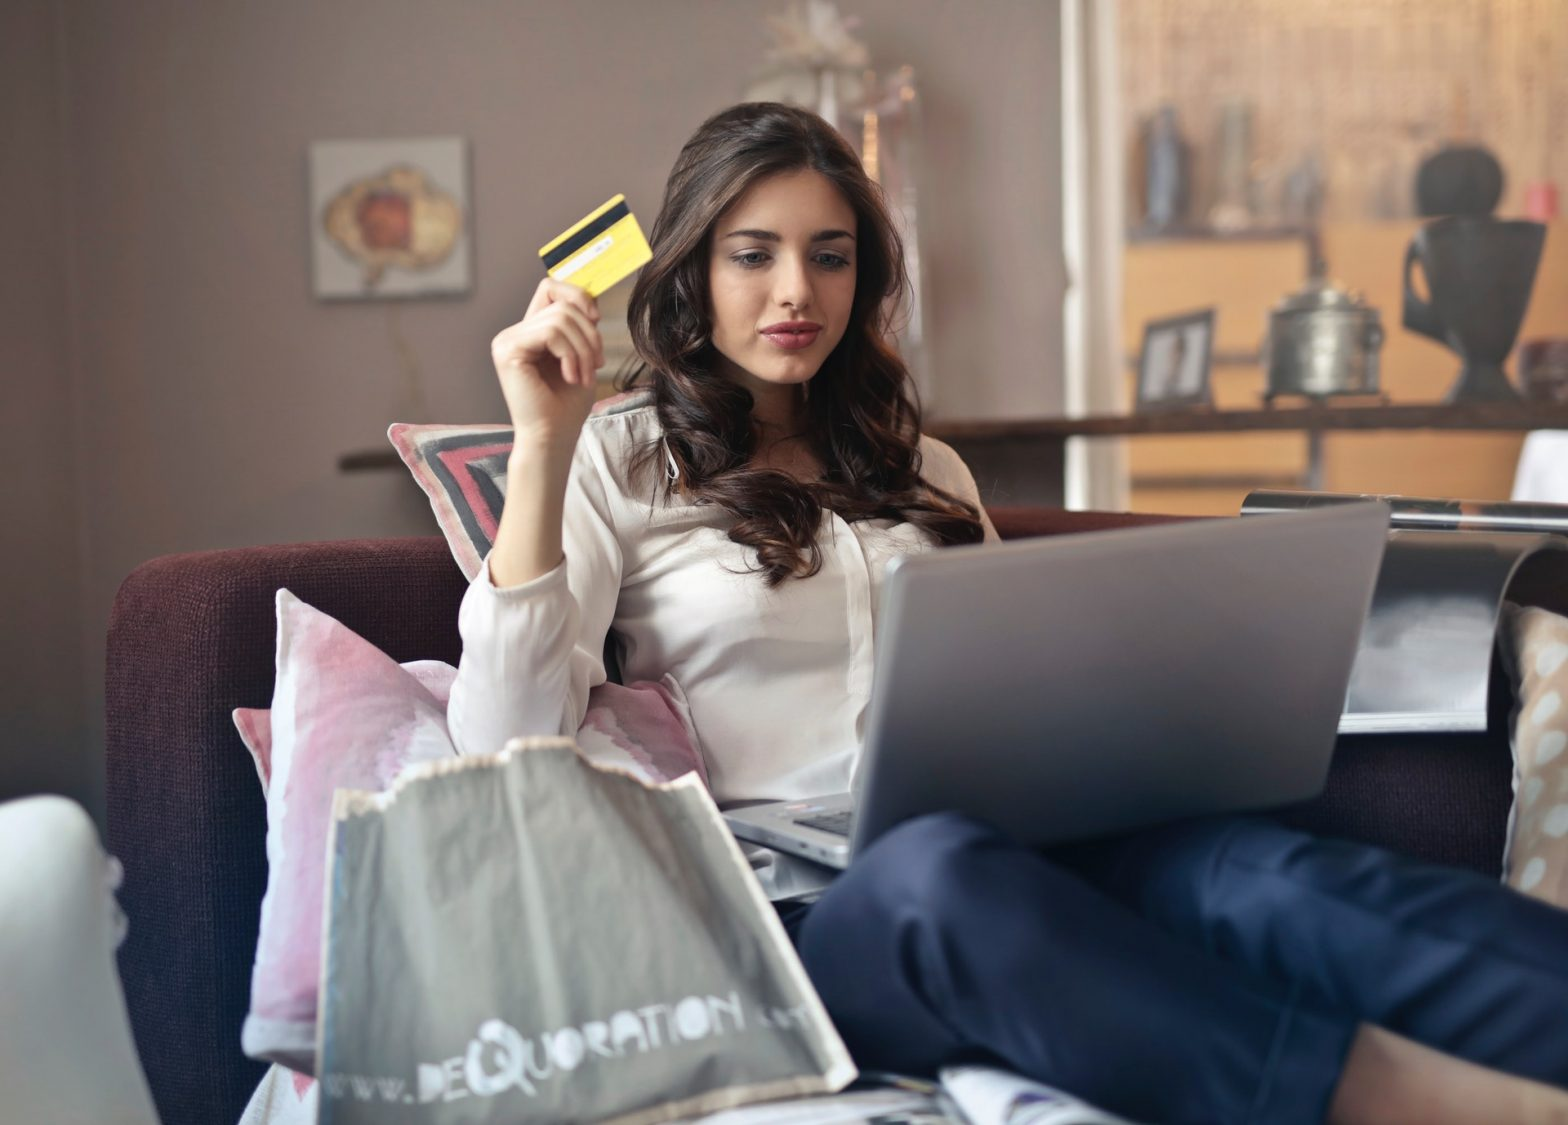 How to get a personal loan with bad credit?